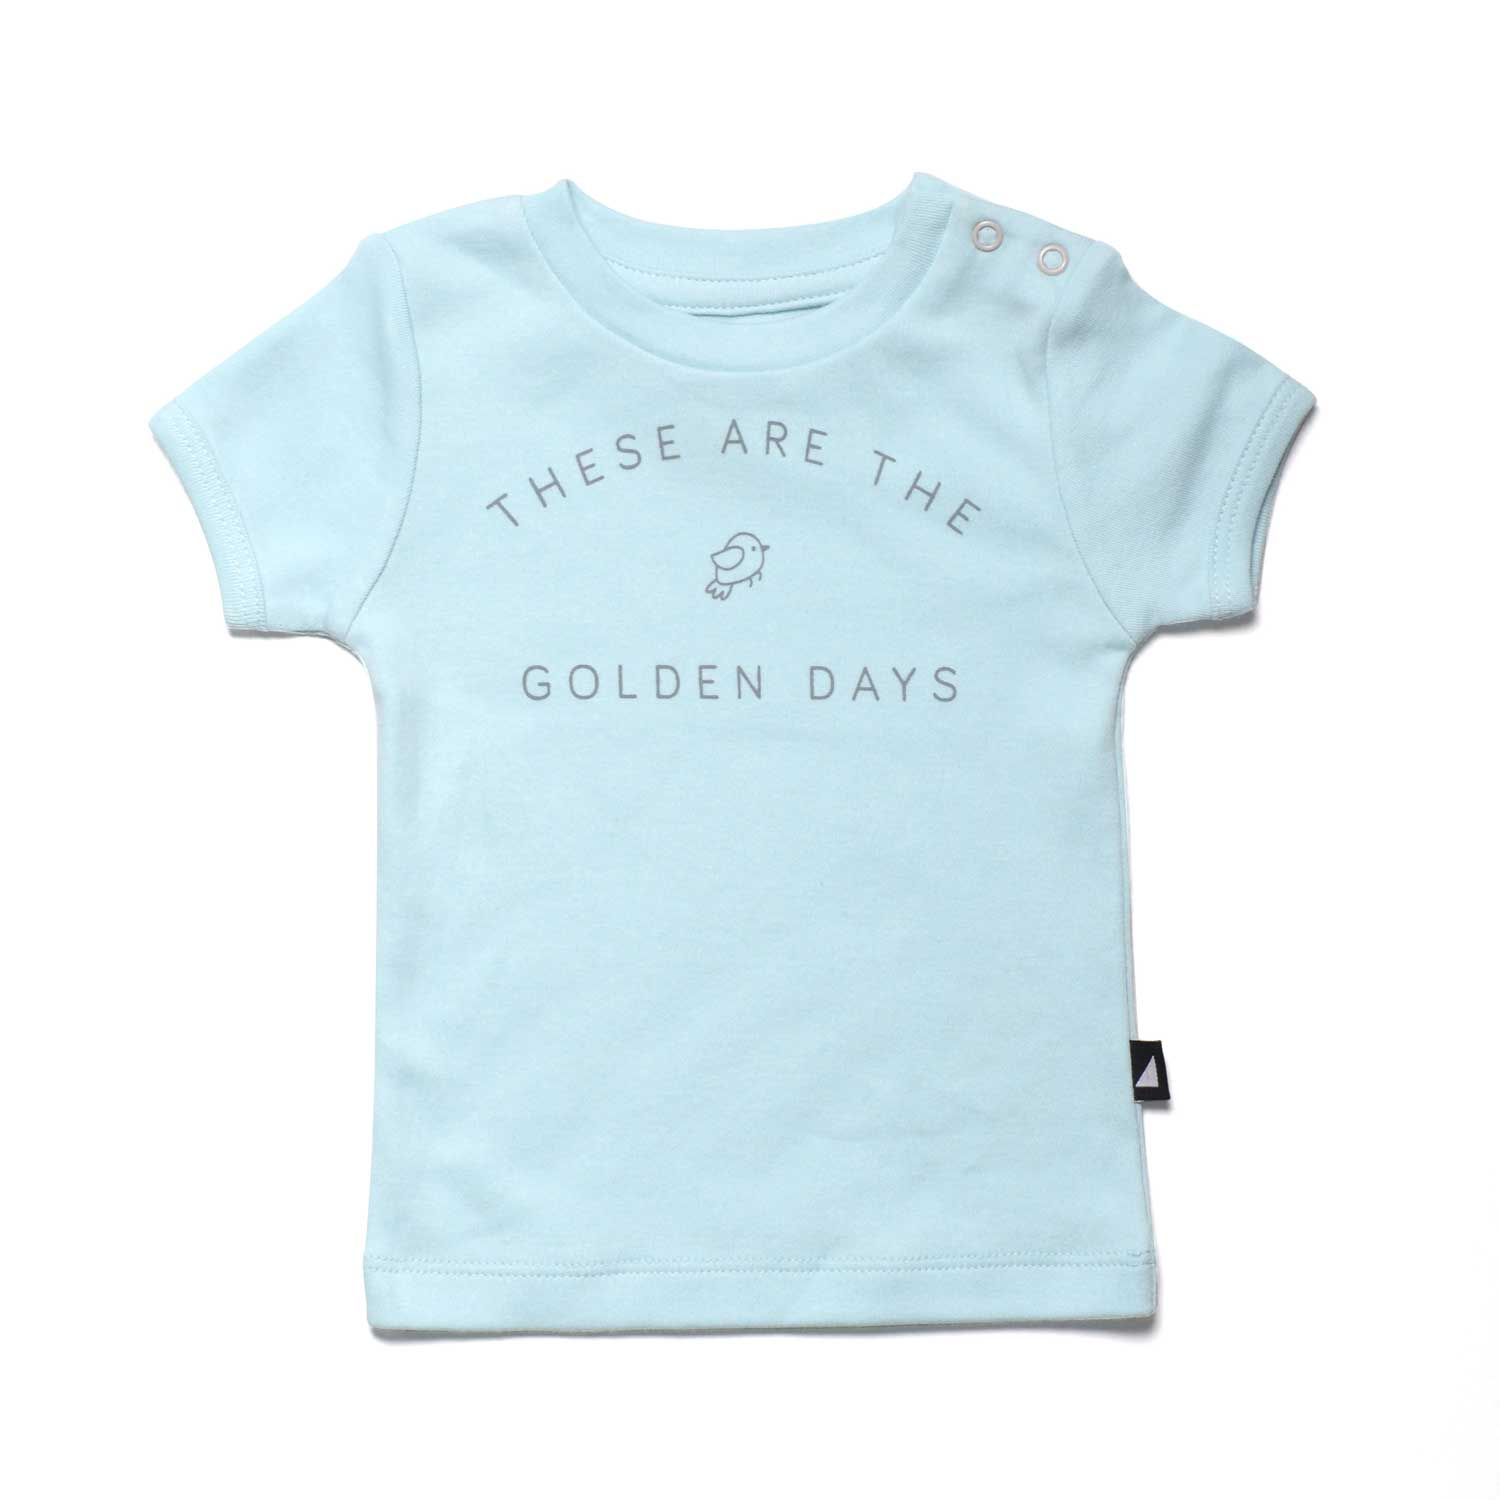 These are the days tee